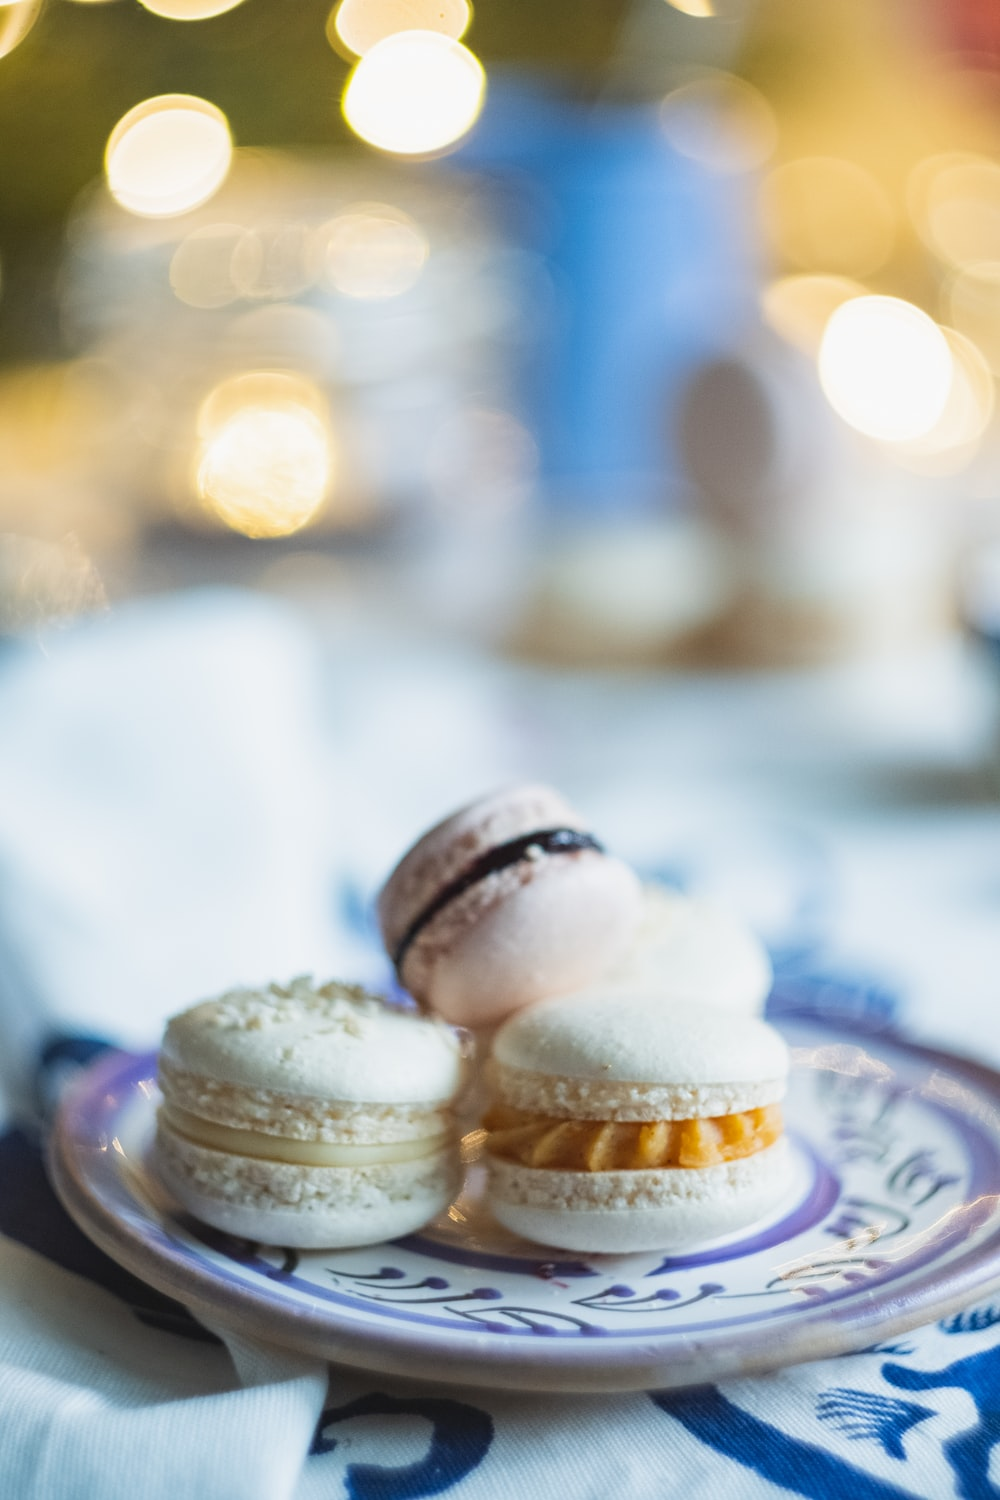 selective focus photo of macarons on purple plate